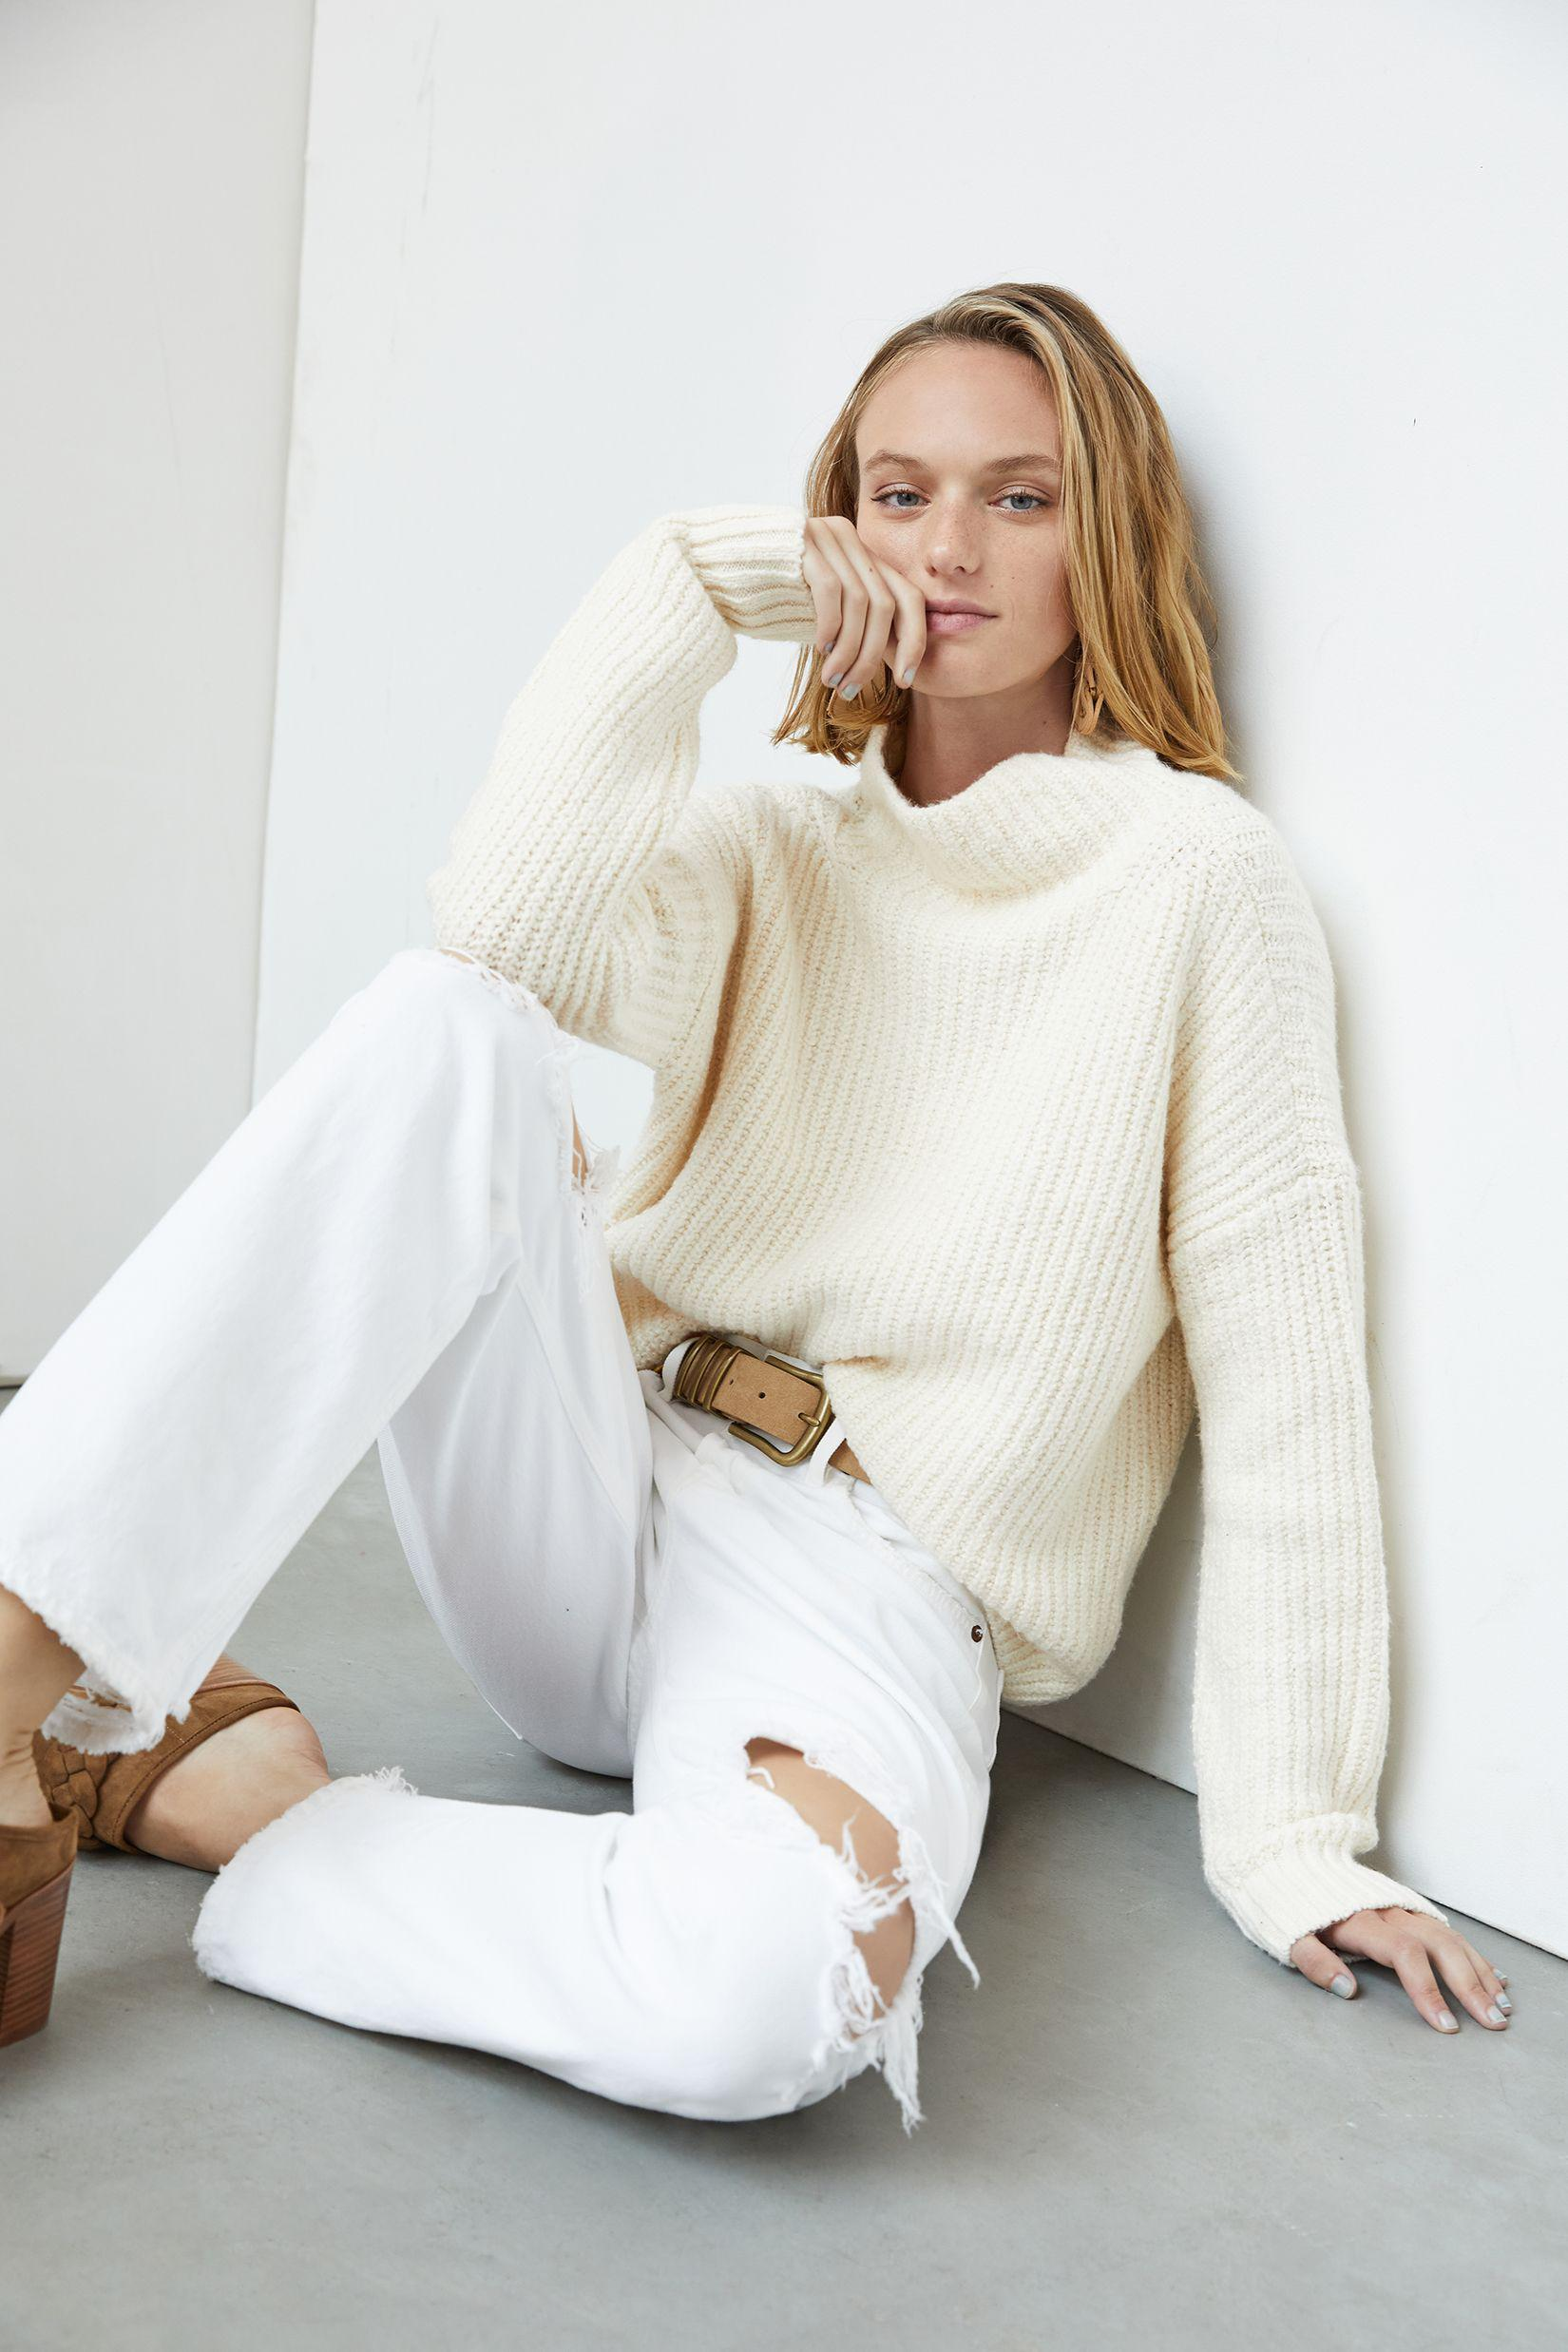 woman in Anthropologie Funnel Neck Favorite Fall Sweaters and white jeans